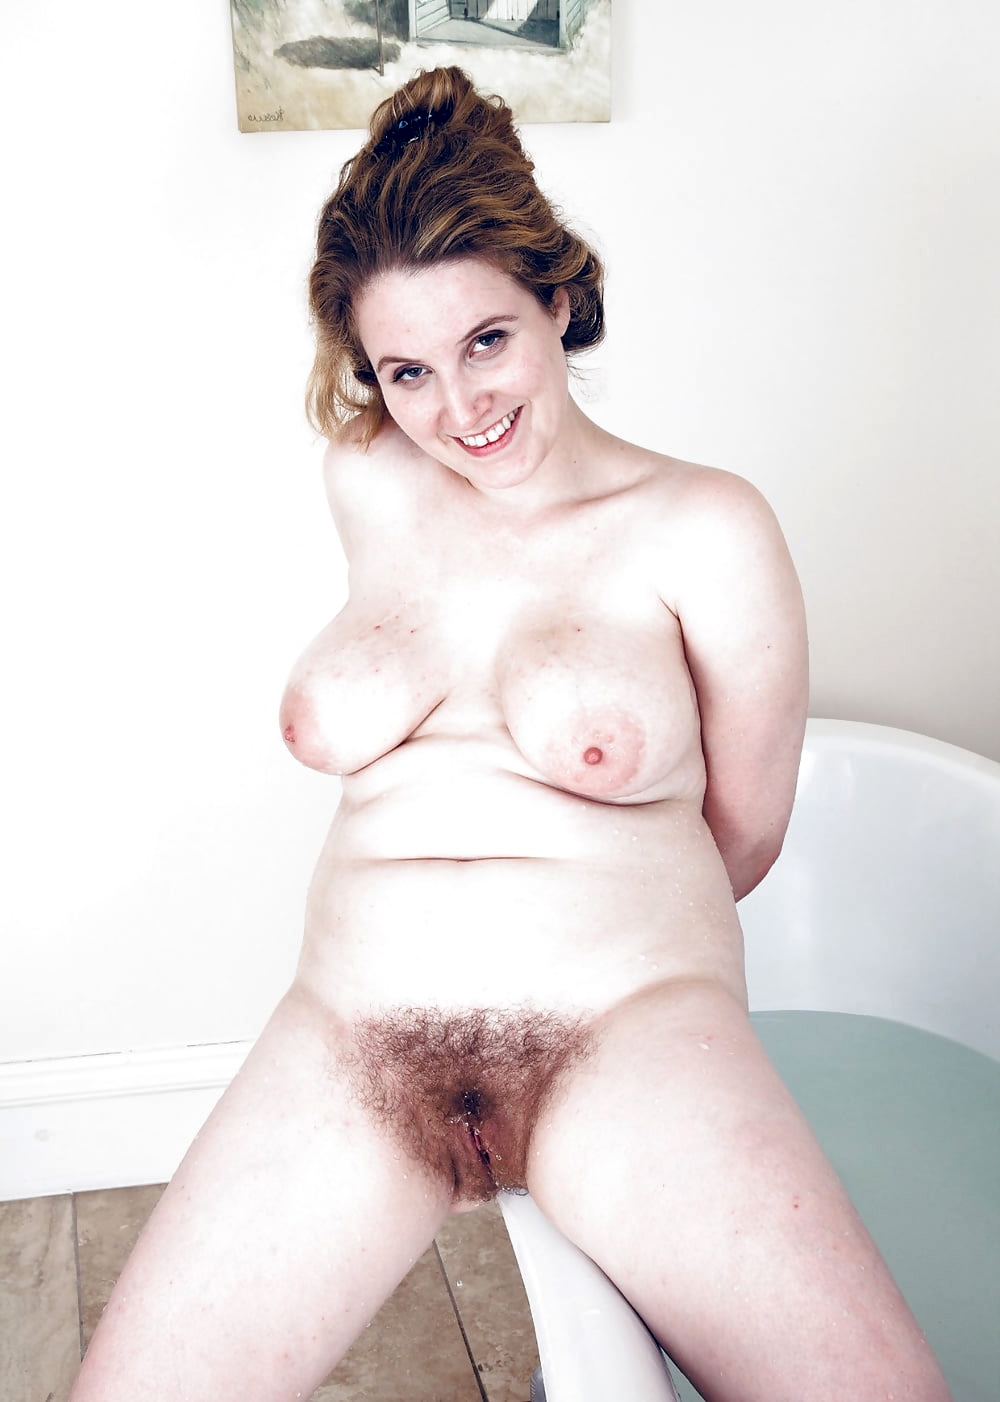 nice broad in the beam tits hairy pussy